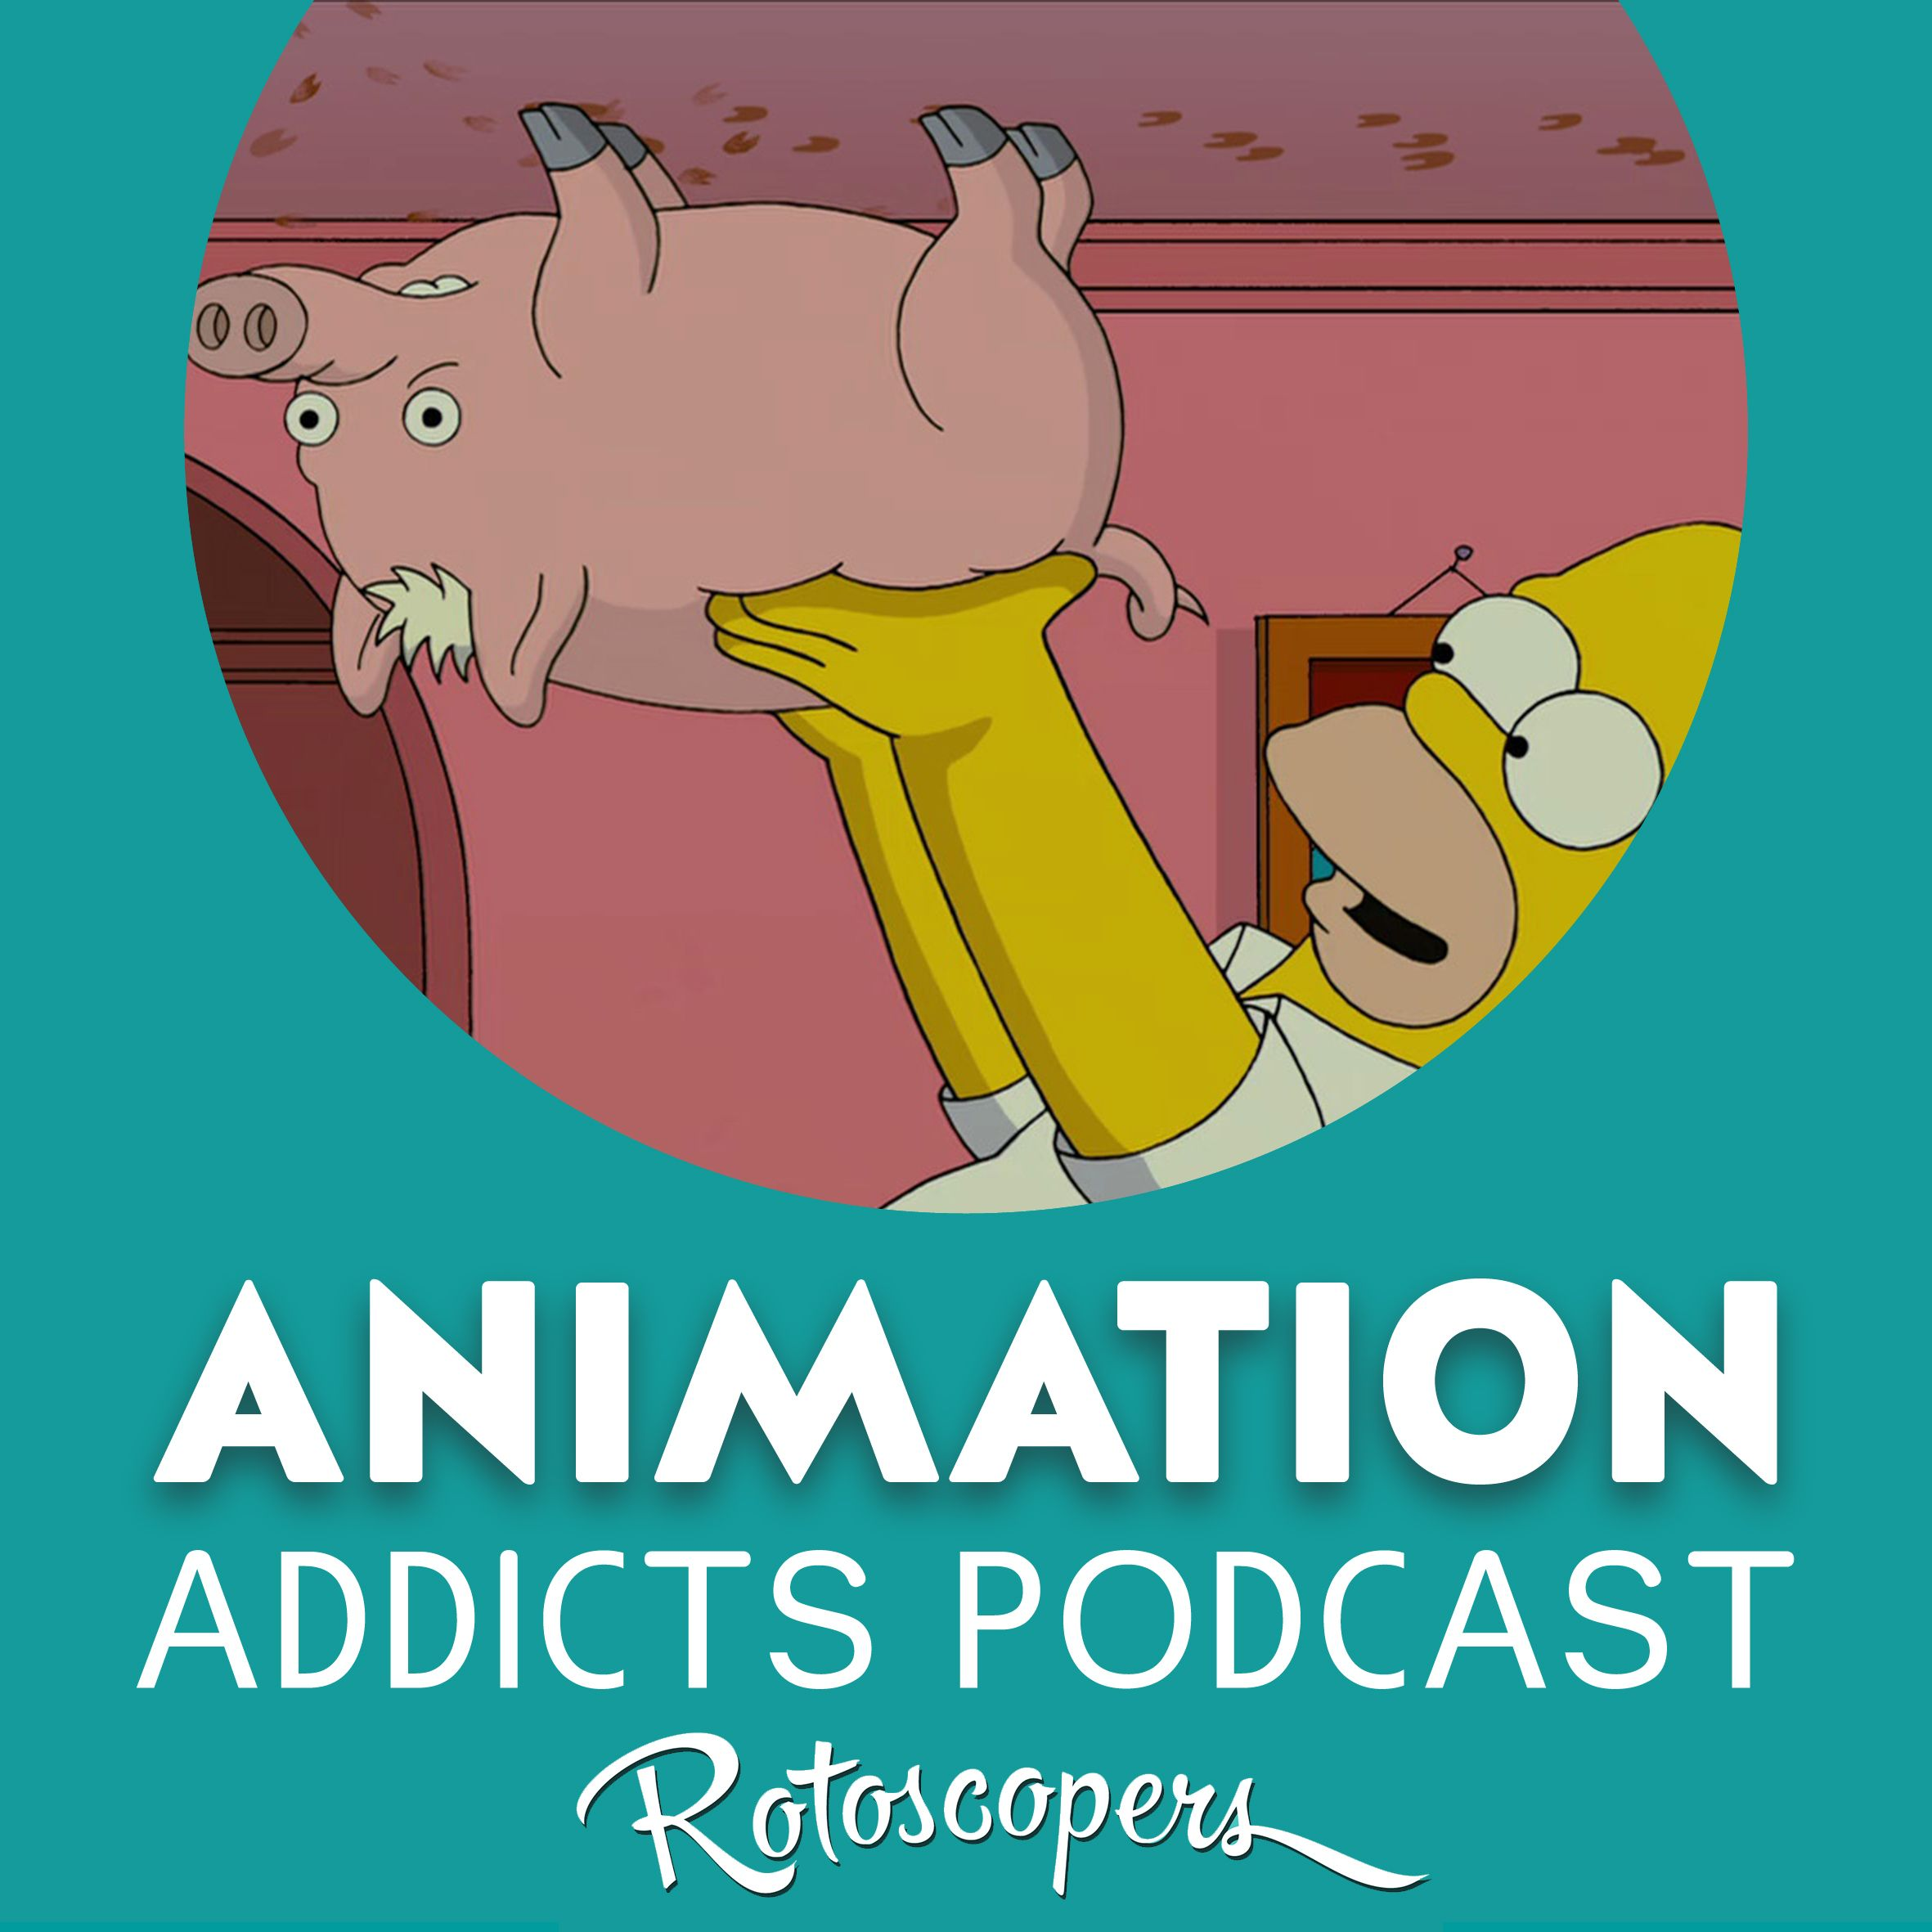 096 The Simpsons Movie I Was Beat In Tic Tac Toe By A Chicken Animation Addicts Podcast Disney Pixar Animated Movie Reviews Interviews Rotoscopers Podcast Podtail